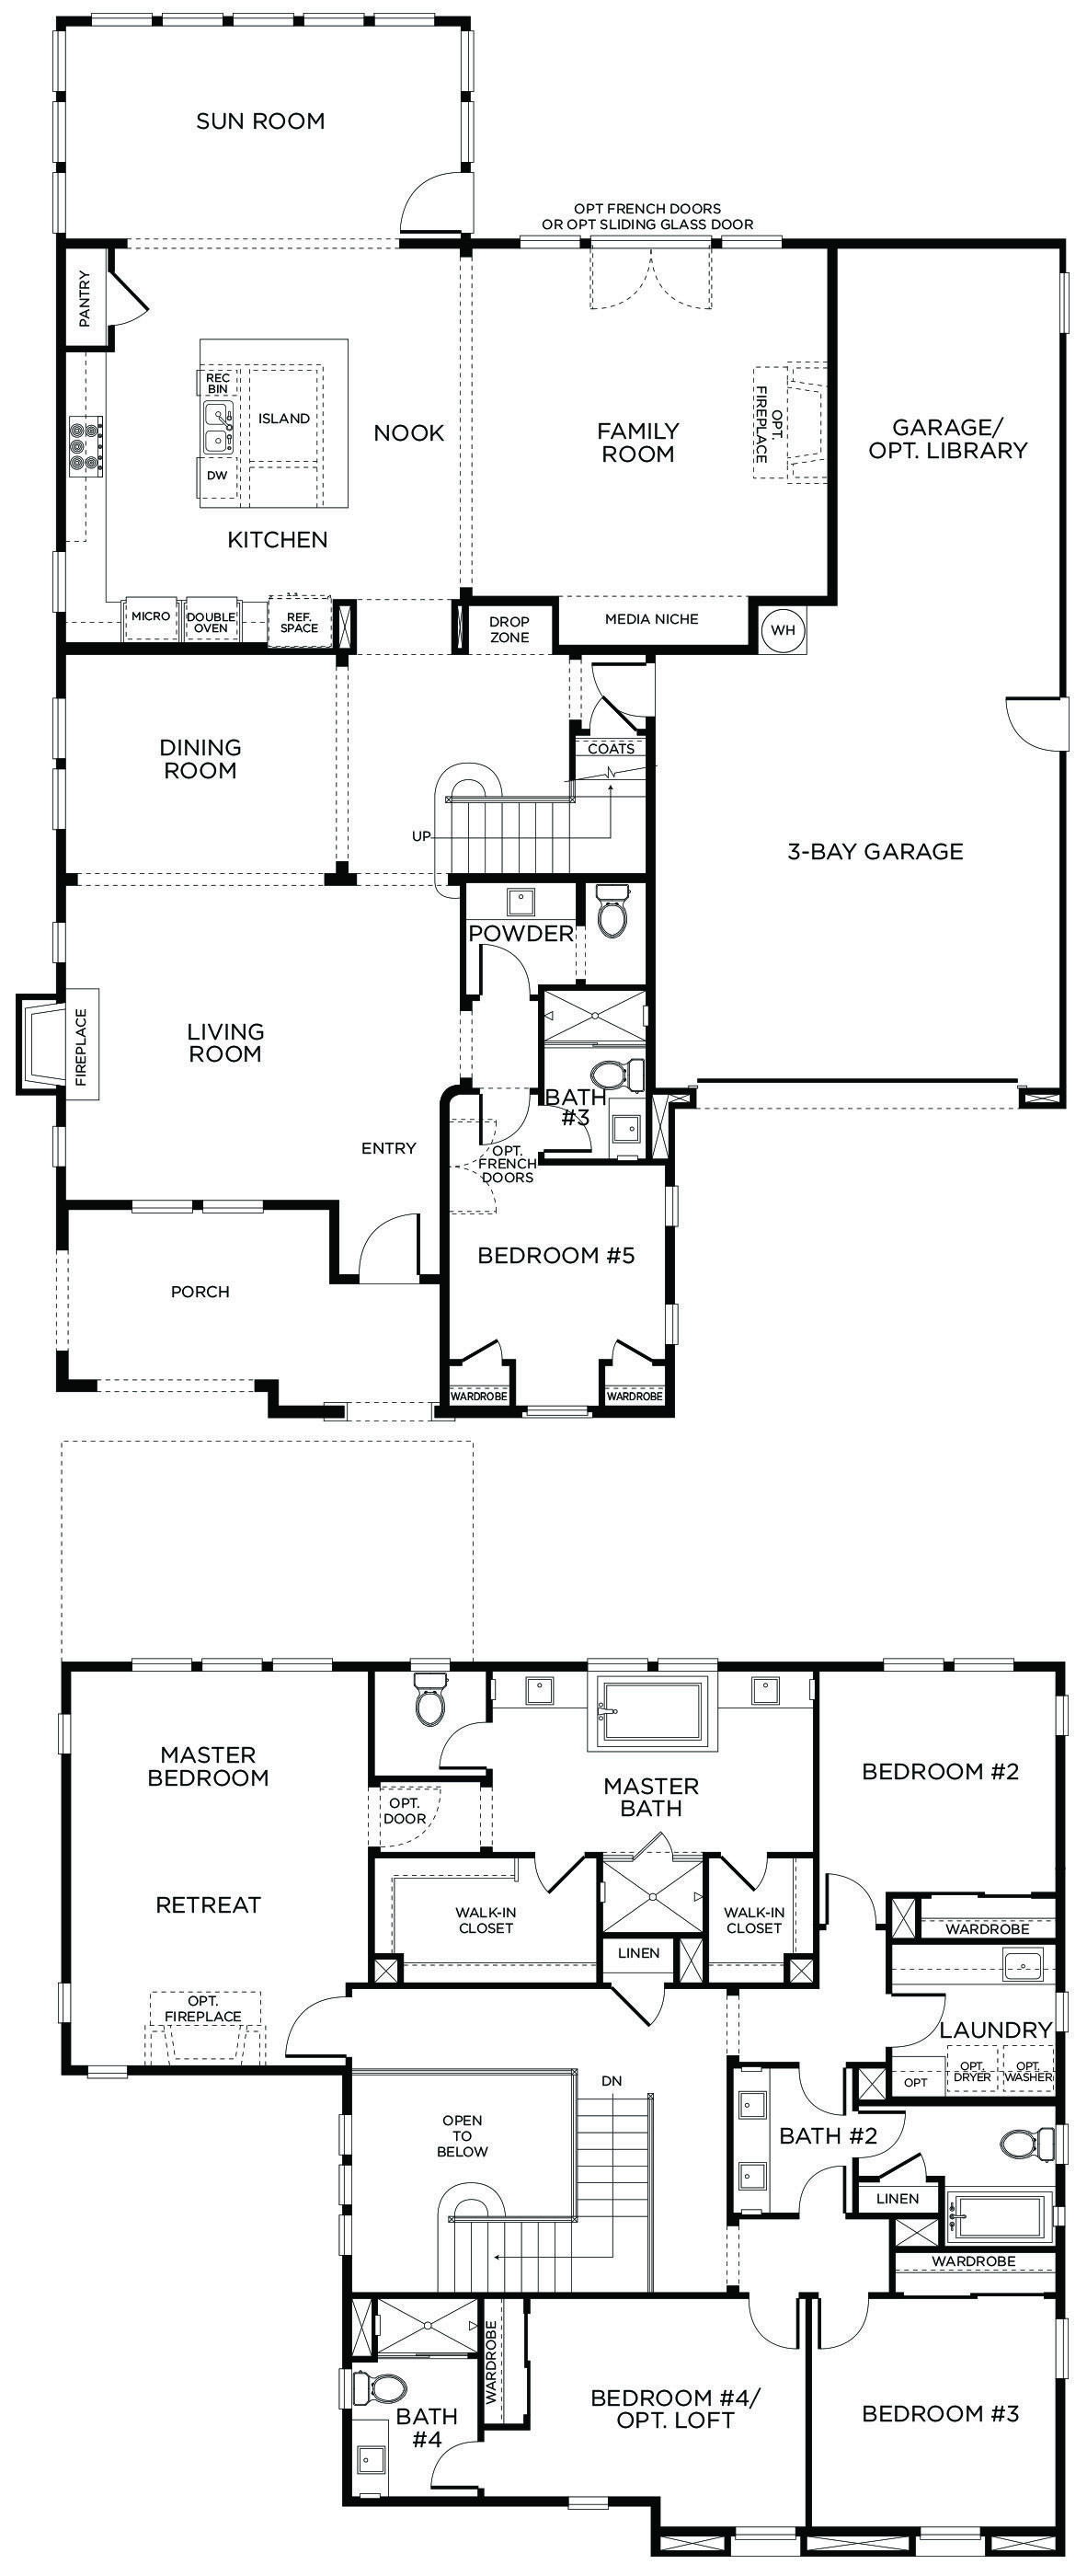 Tandem Garage House Plans Pin By Leona Hand On House Plans House Plans Bathroom Floor